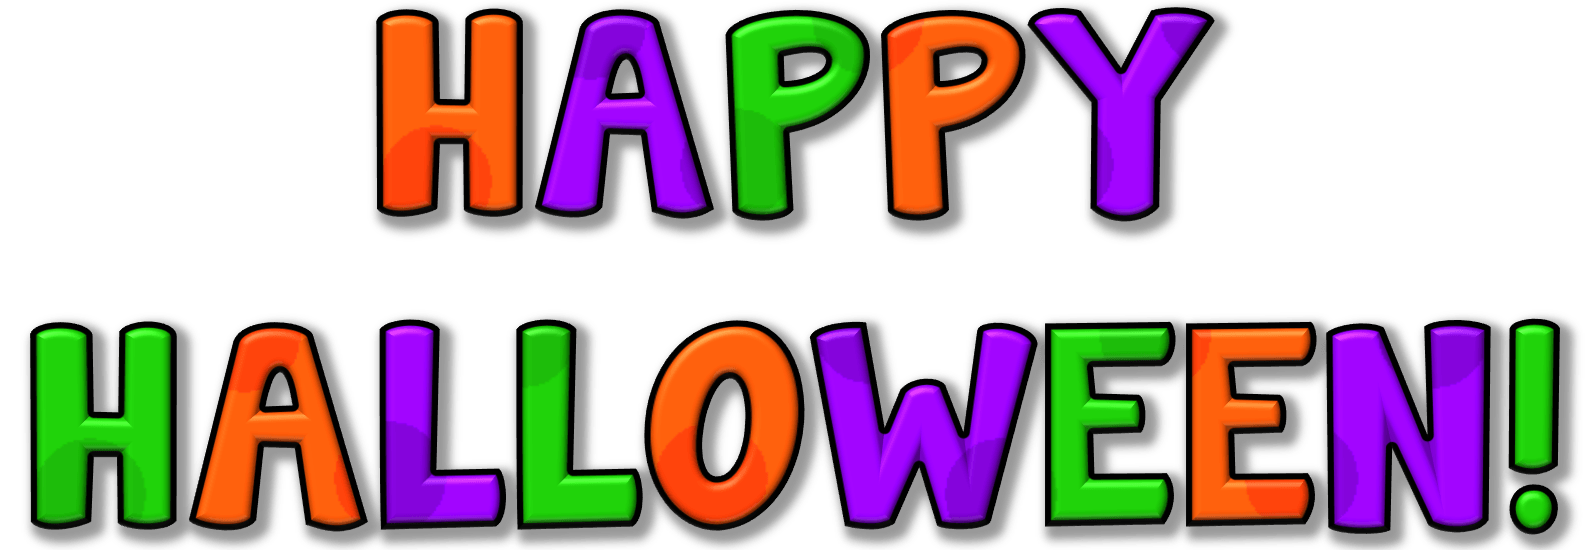 Happy birthday halloween clipart clipart free library Religious Halloween Cliparts - Cliparts Zone clipart free library